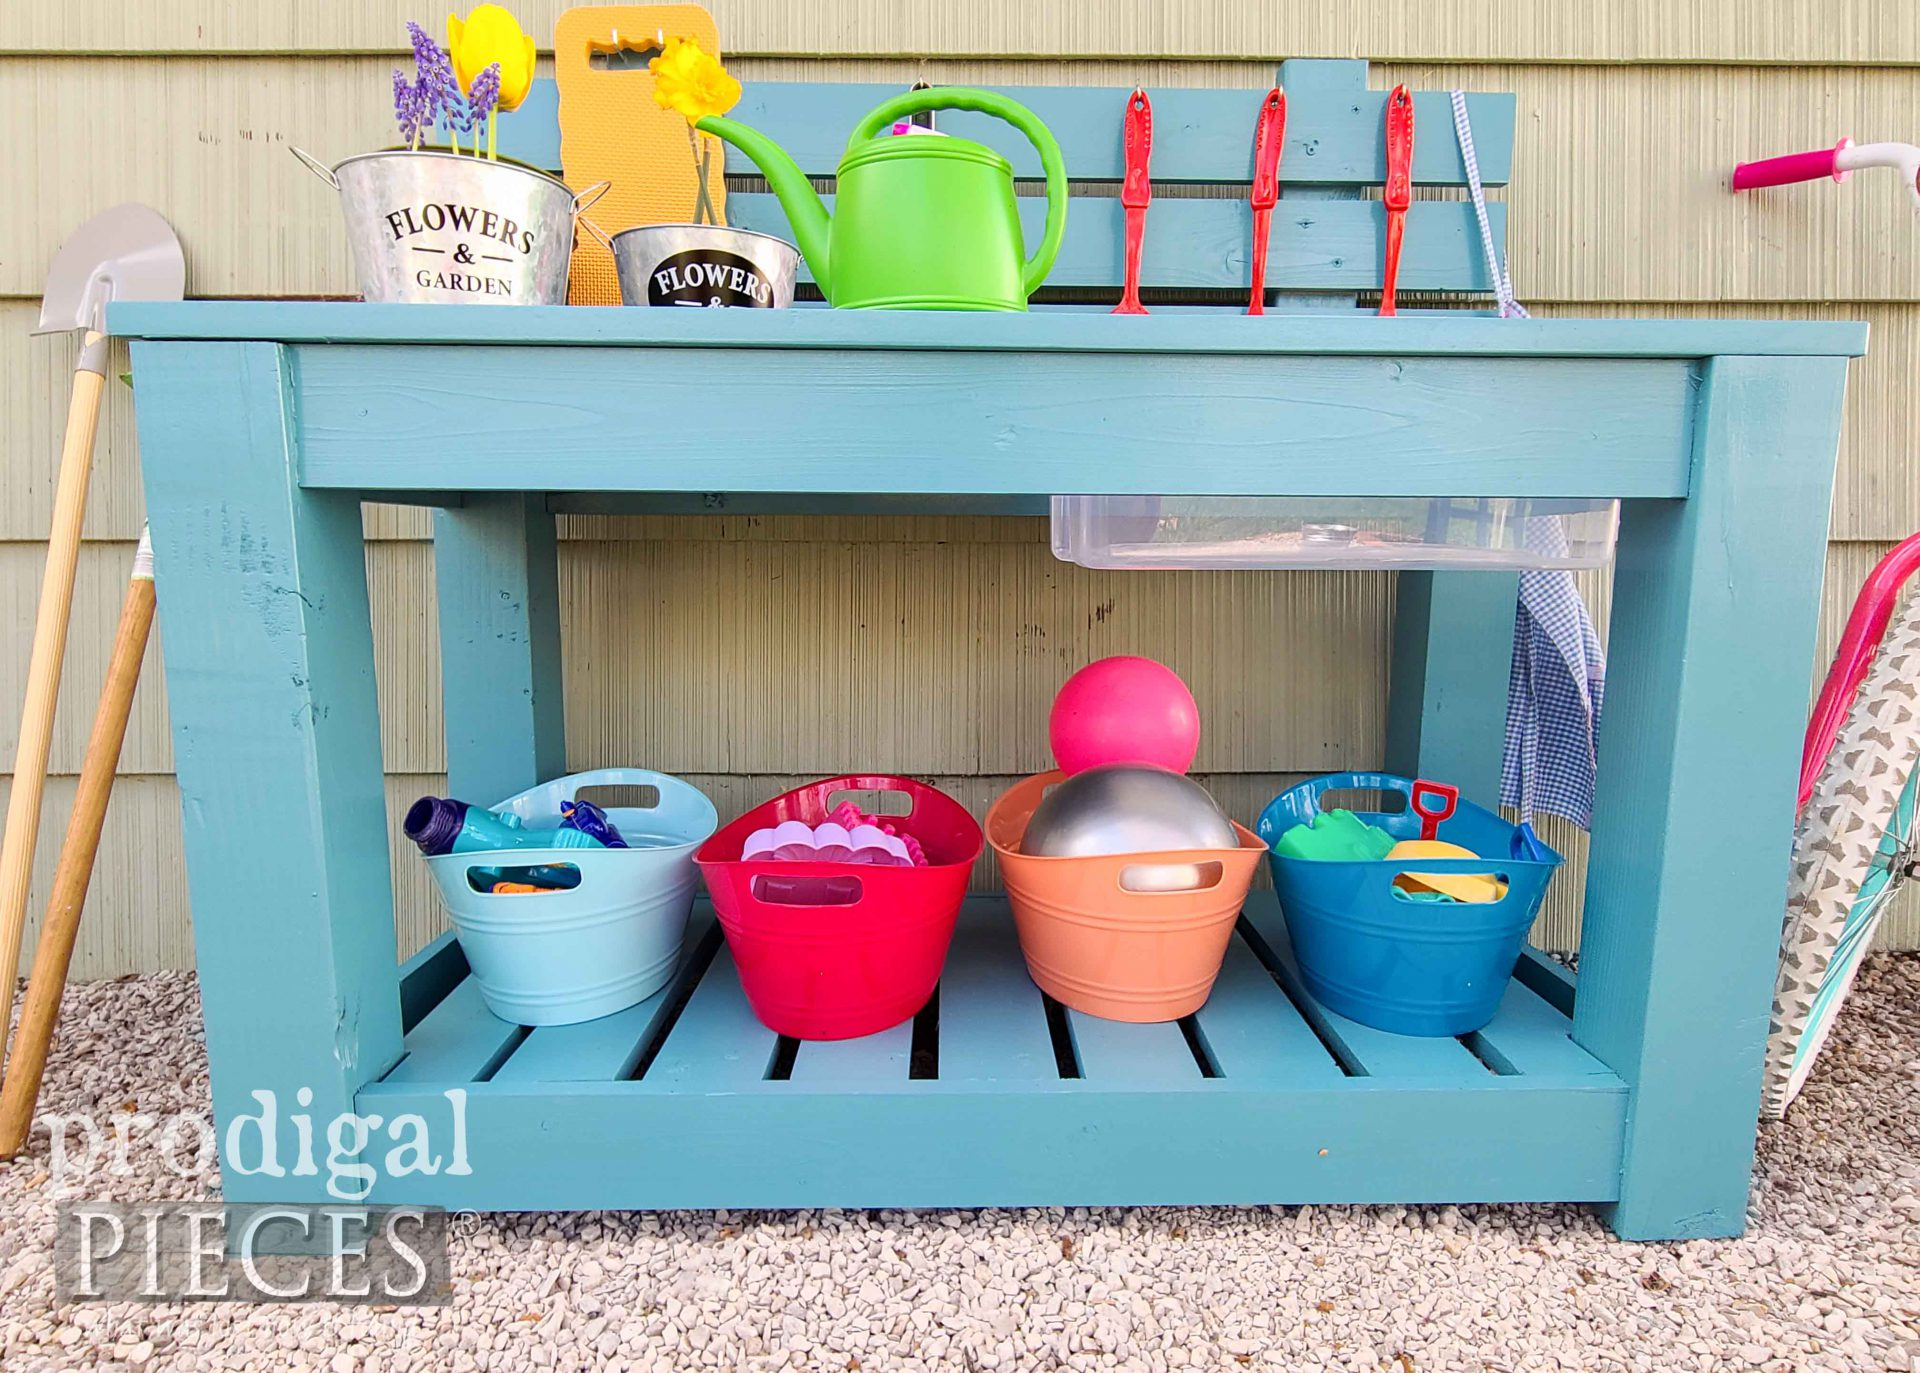 Bottom Shelf of Upcycled Mud Bar Built by JC & Larissa of Prodigal Pieces | prodigalpieces.com #prodigalpieces #pretendplay #kids #toys #woodworking